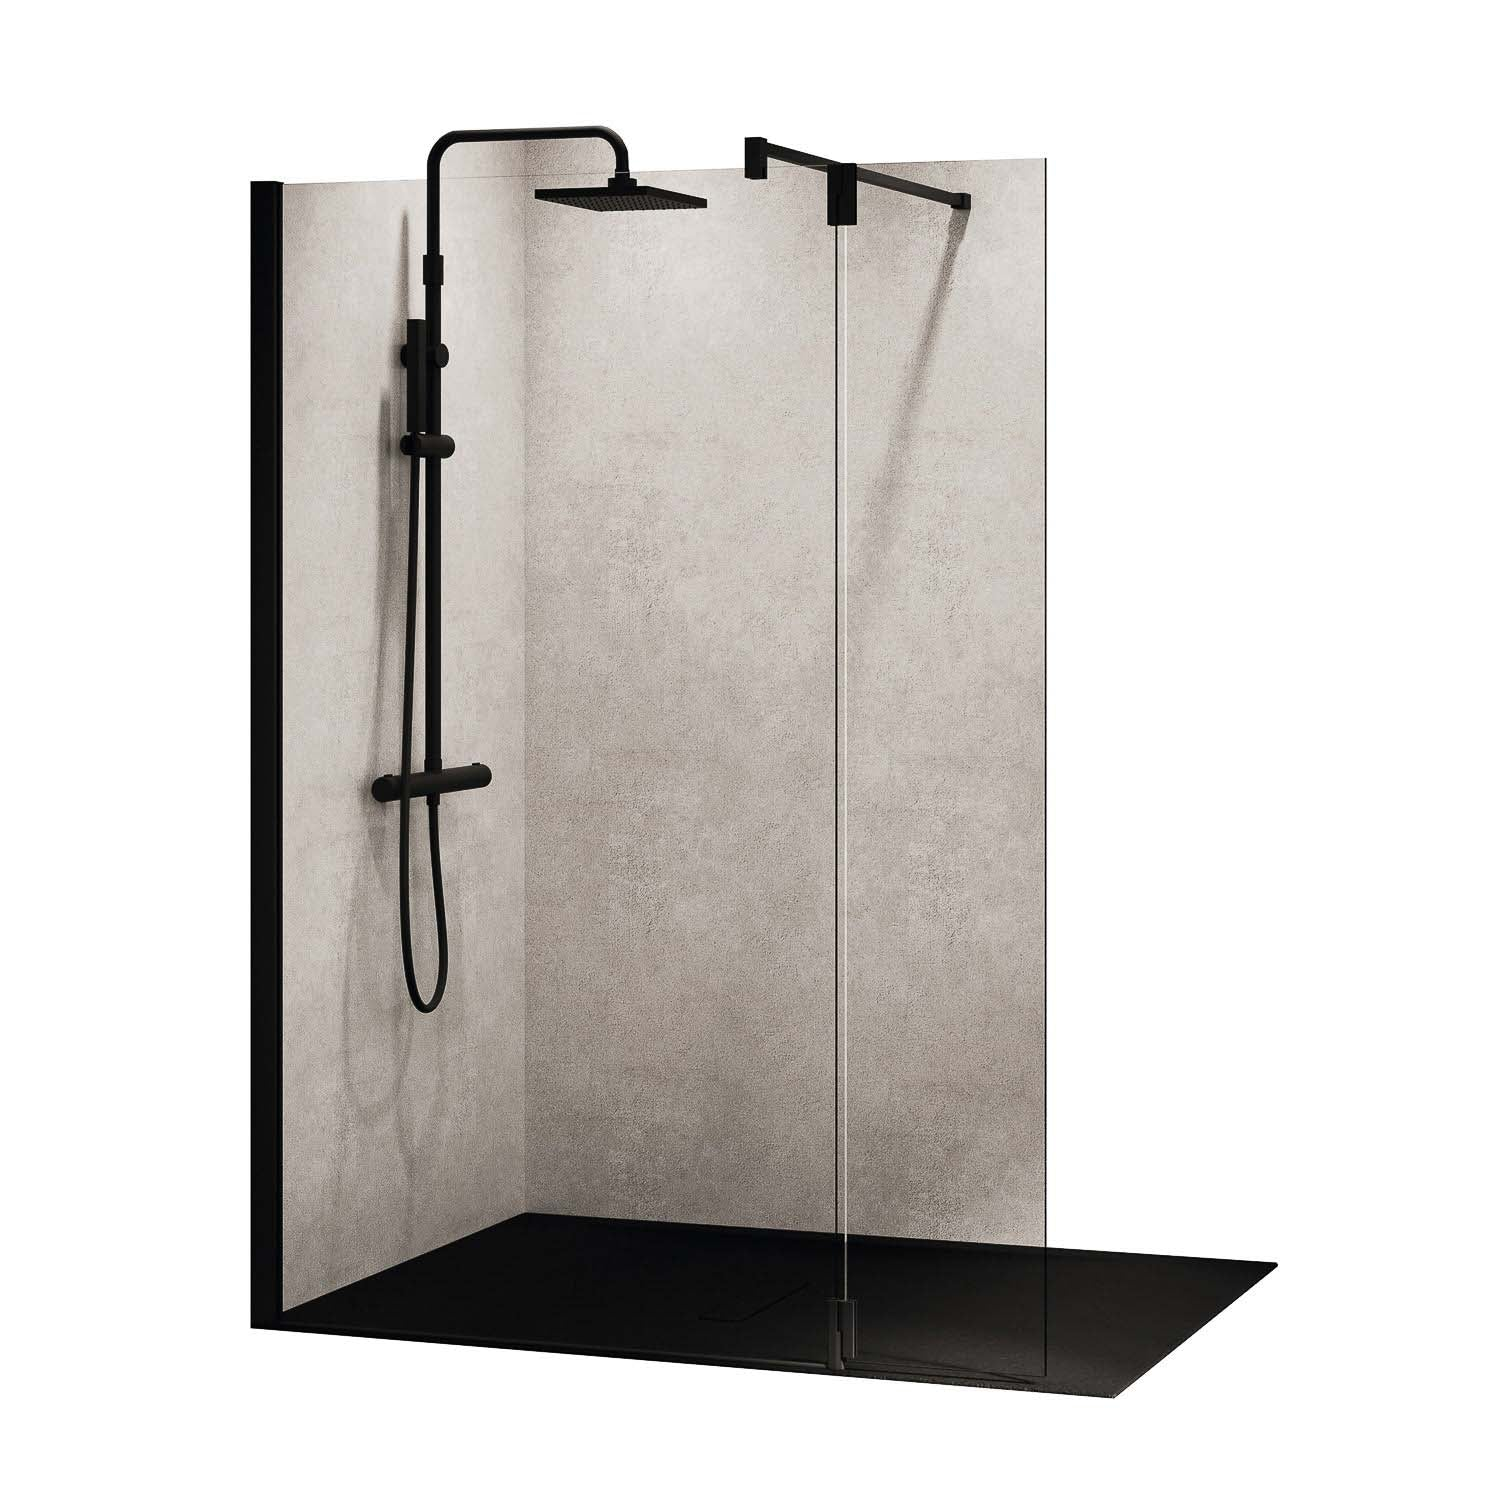 570-600mm Ergo Wet Room Screen Clear Glass with a matt black finish on a white background